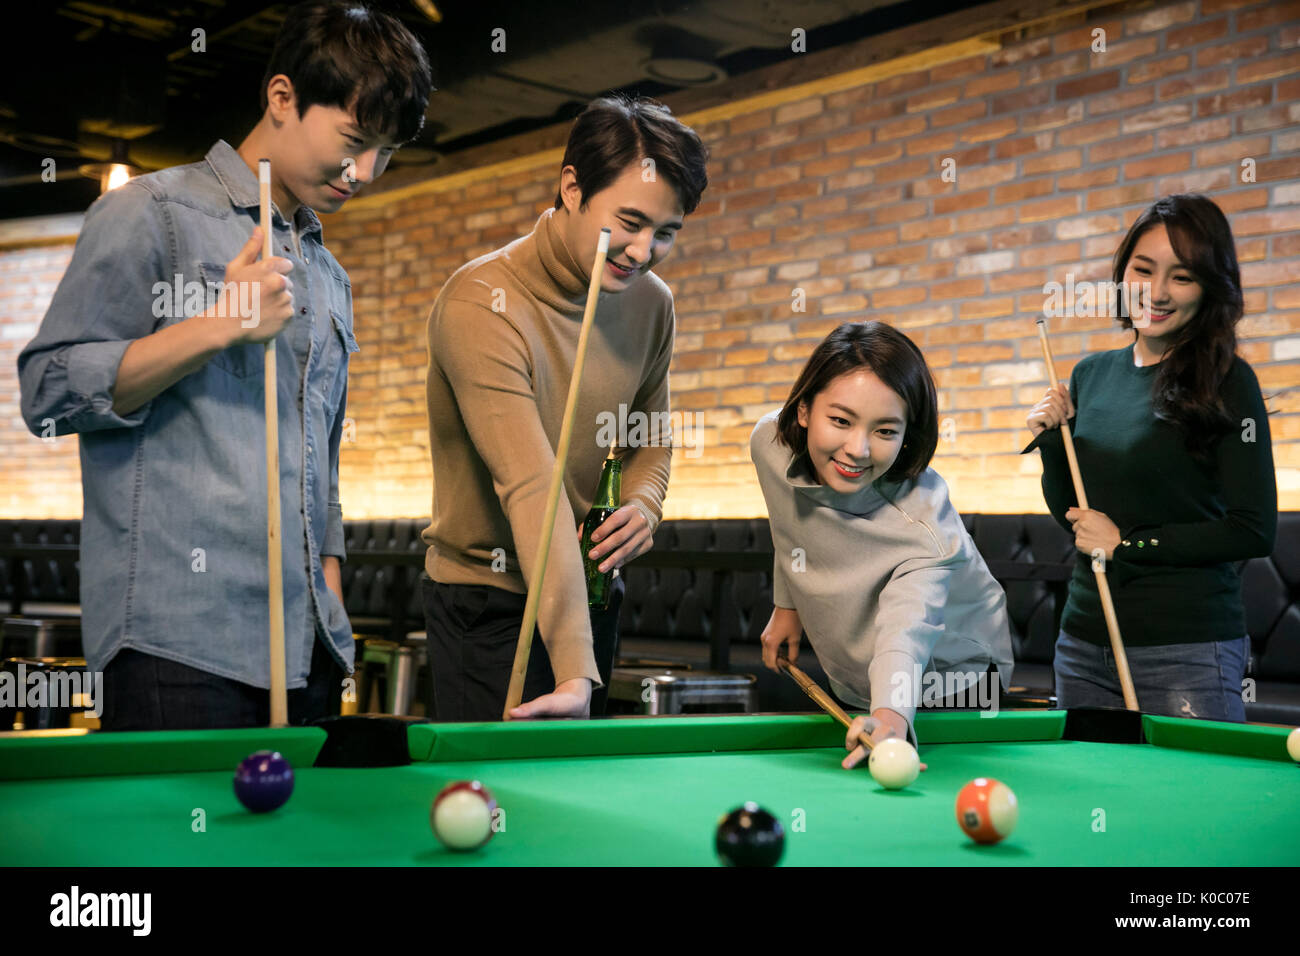 Game for coworkers - Smiling Coworkers Enjoying Billiard Game Stock Image